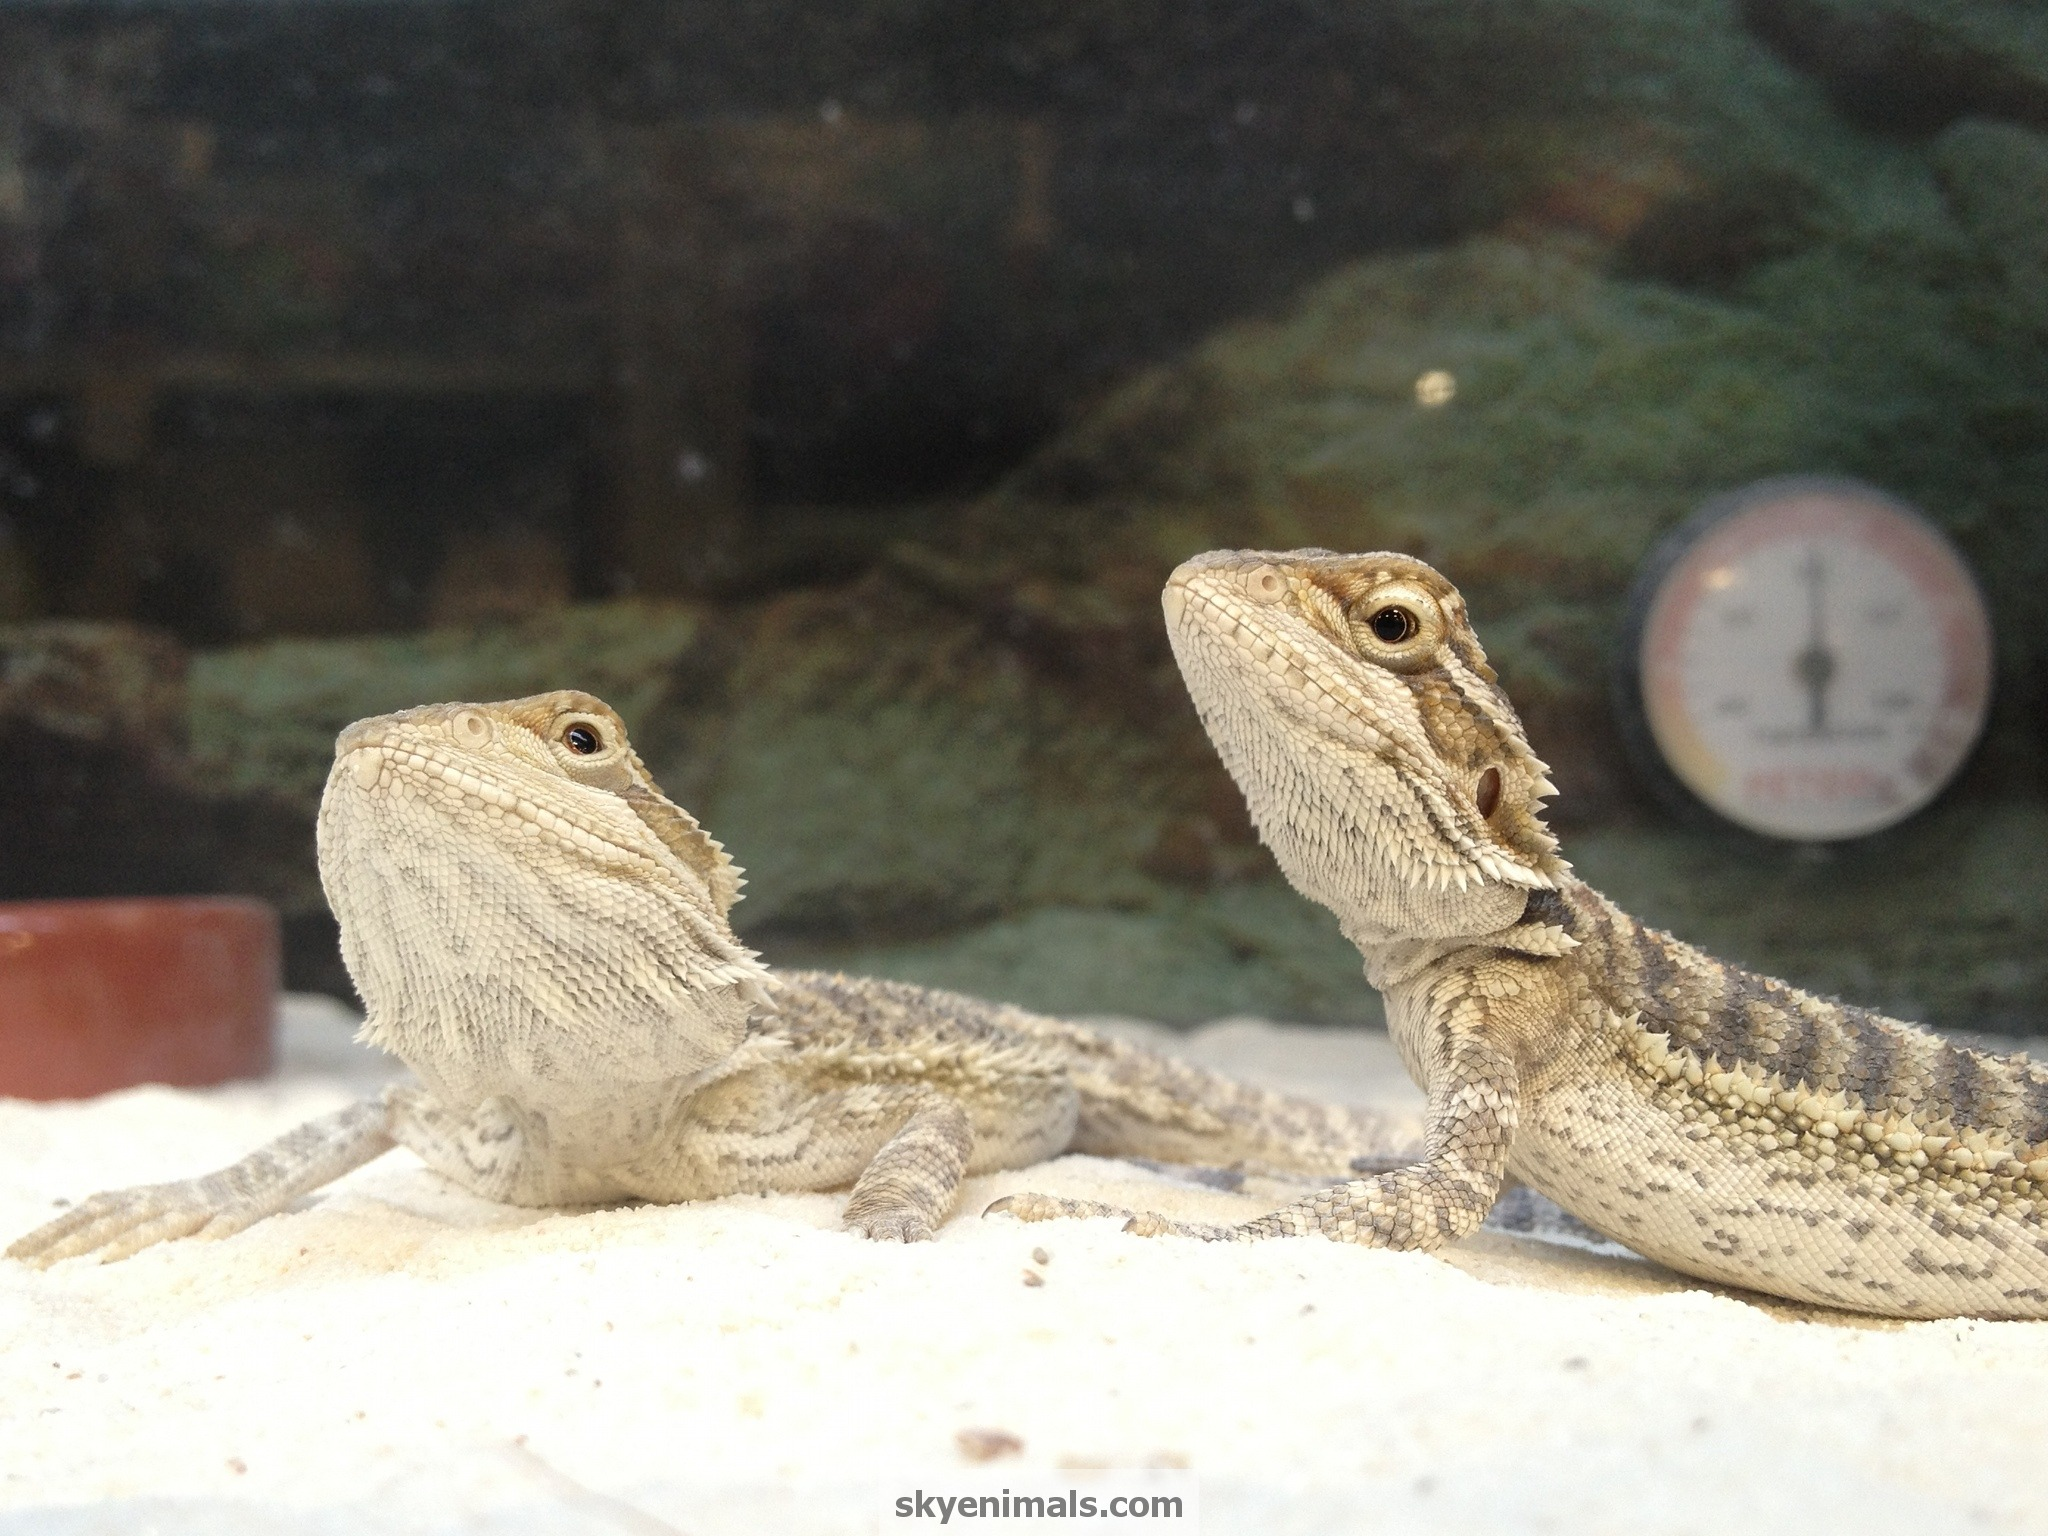 Free reptile wallpaper images baby bearded dragon wallpaper image voltagebd Choice Image